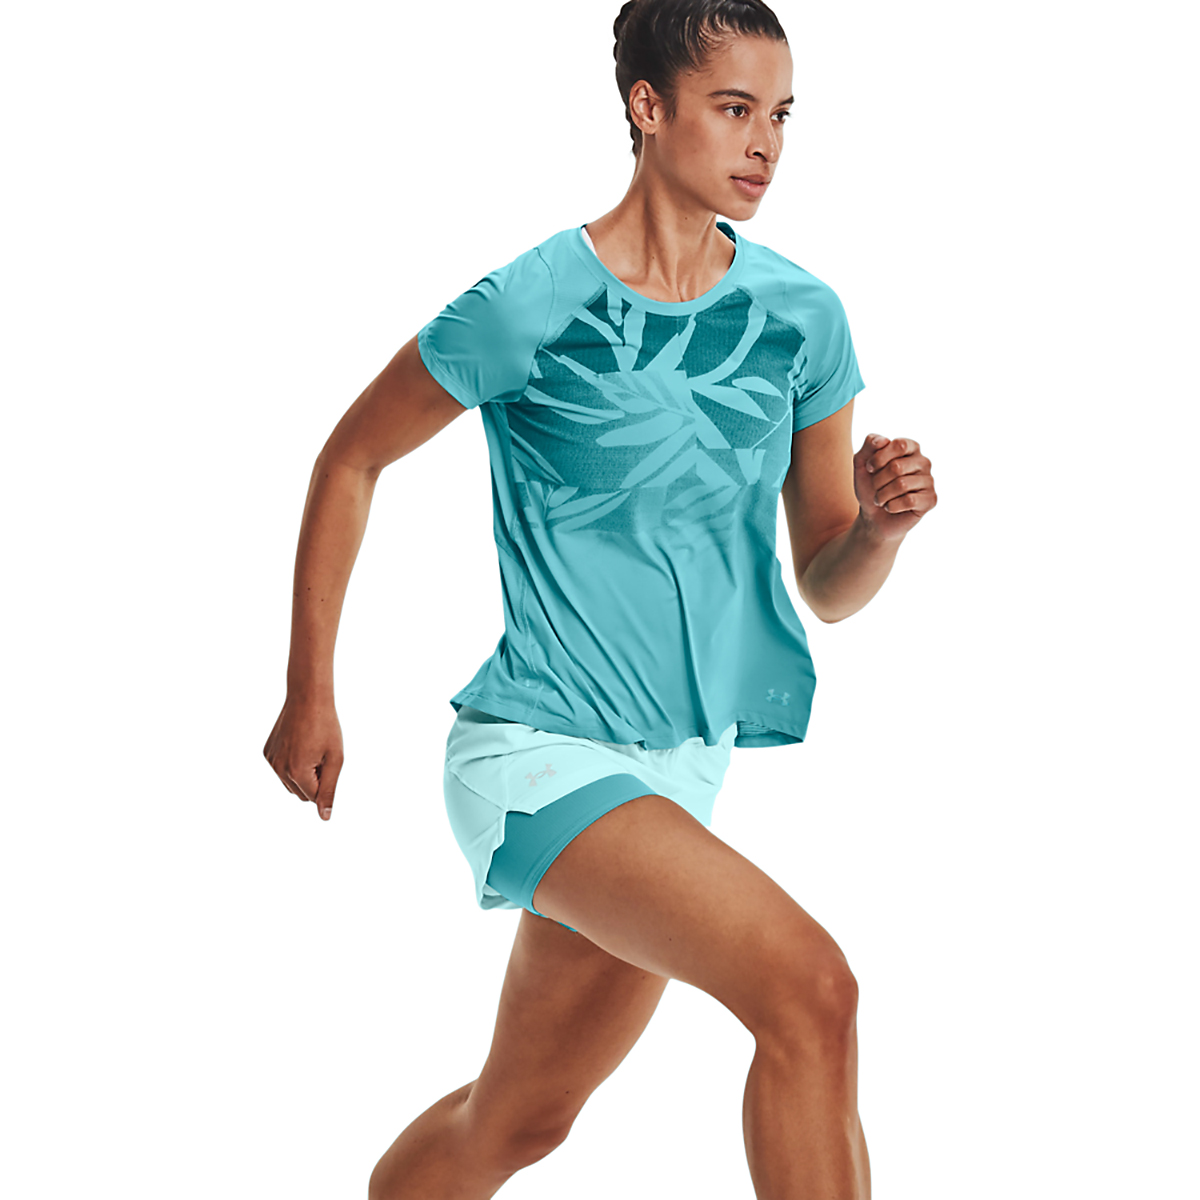 Women's Under Armour Isochill Run 2 in 1 Short - Color: Breeze Cosmos - Size: XS, Breeze Cosmos, large, image 4